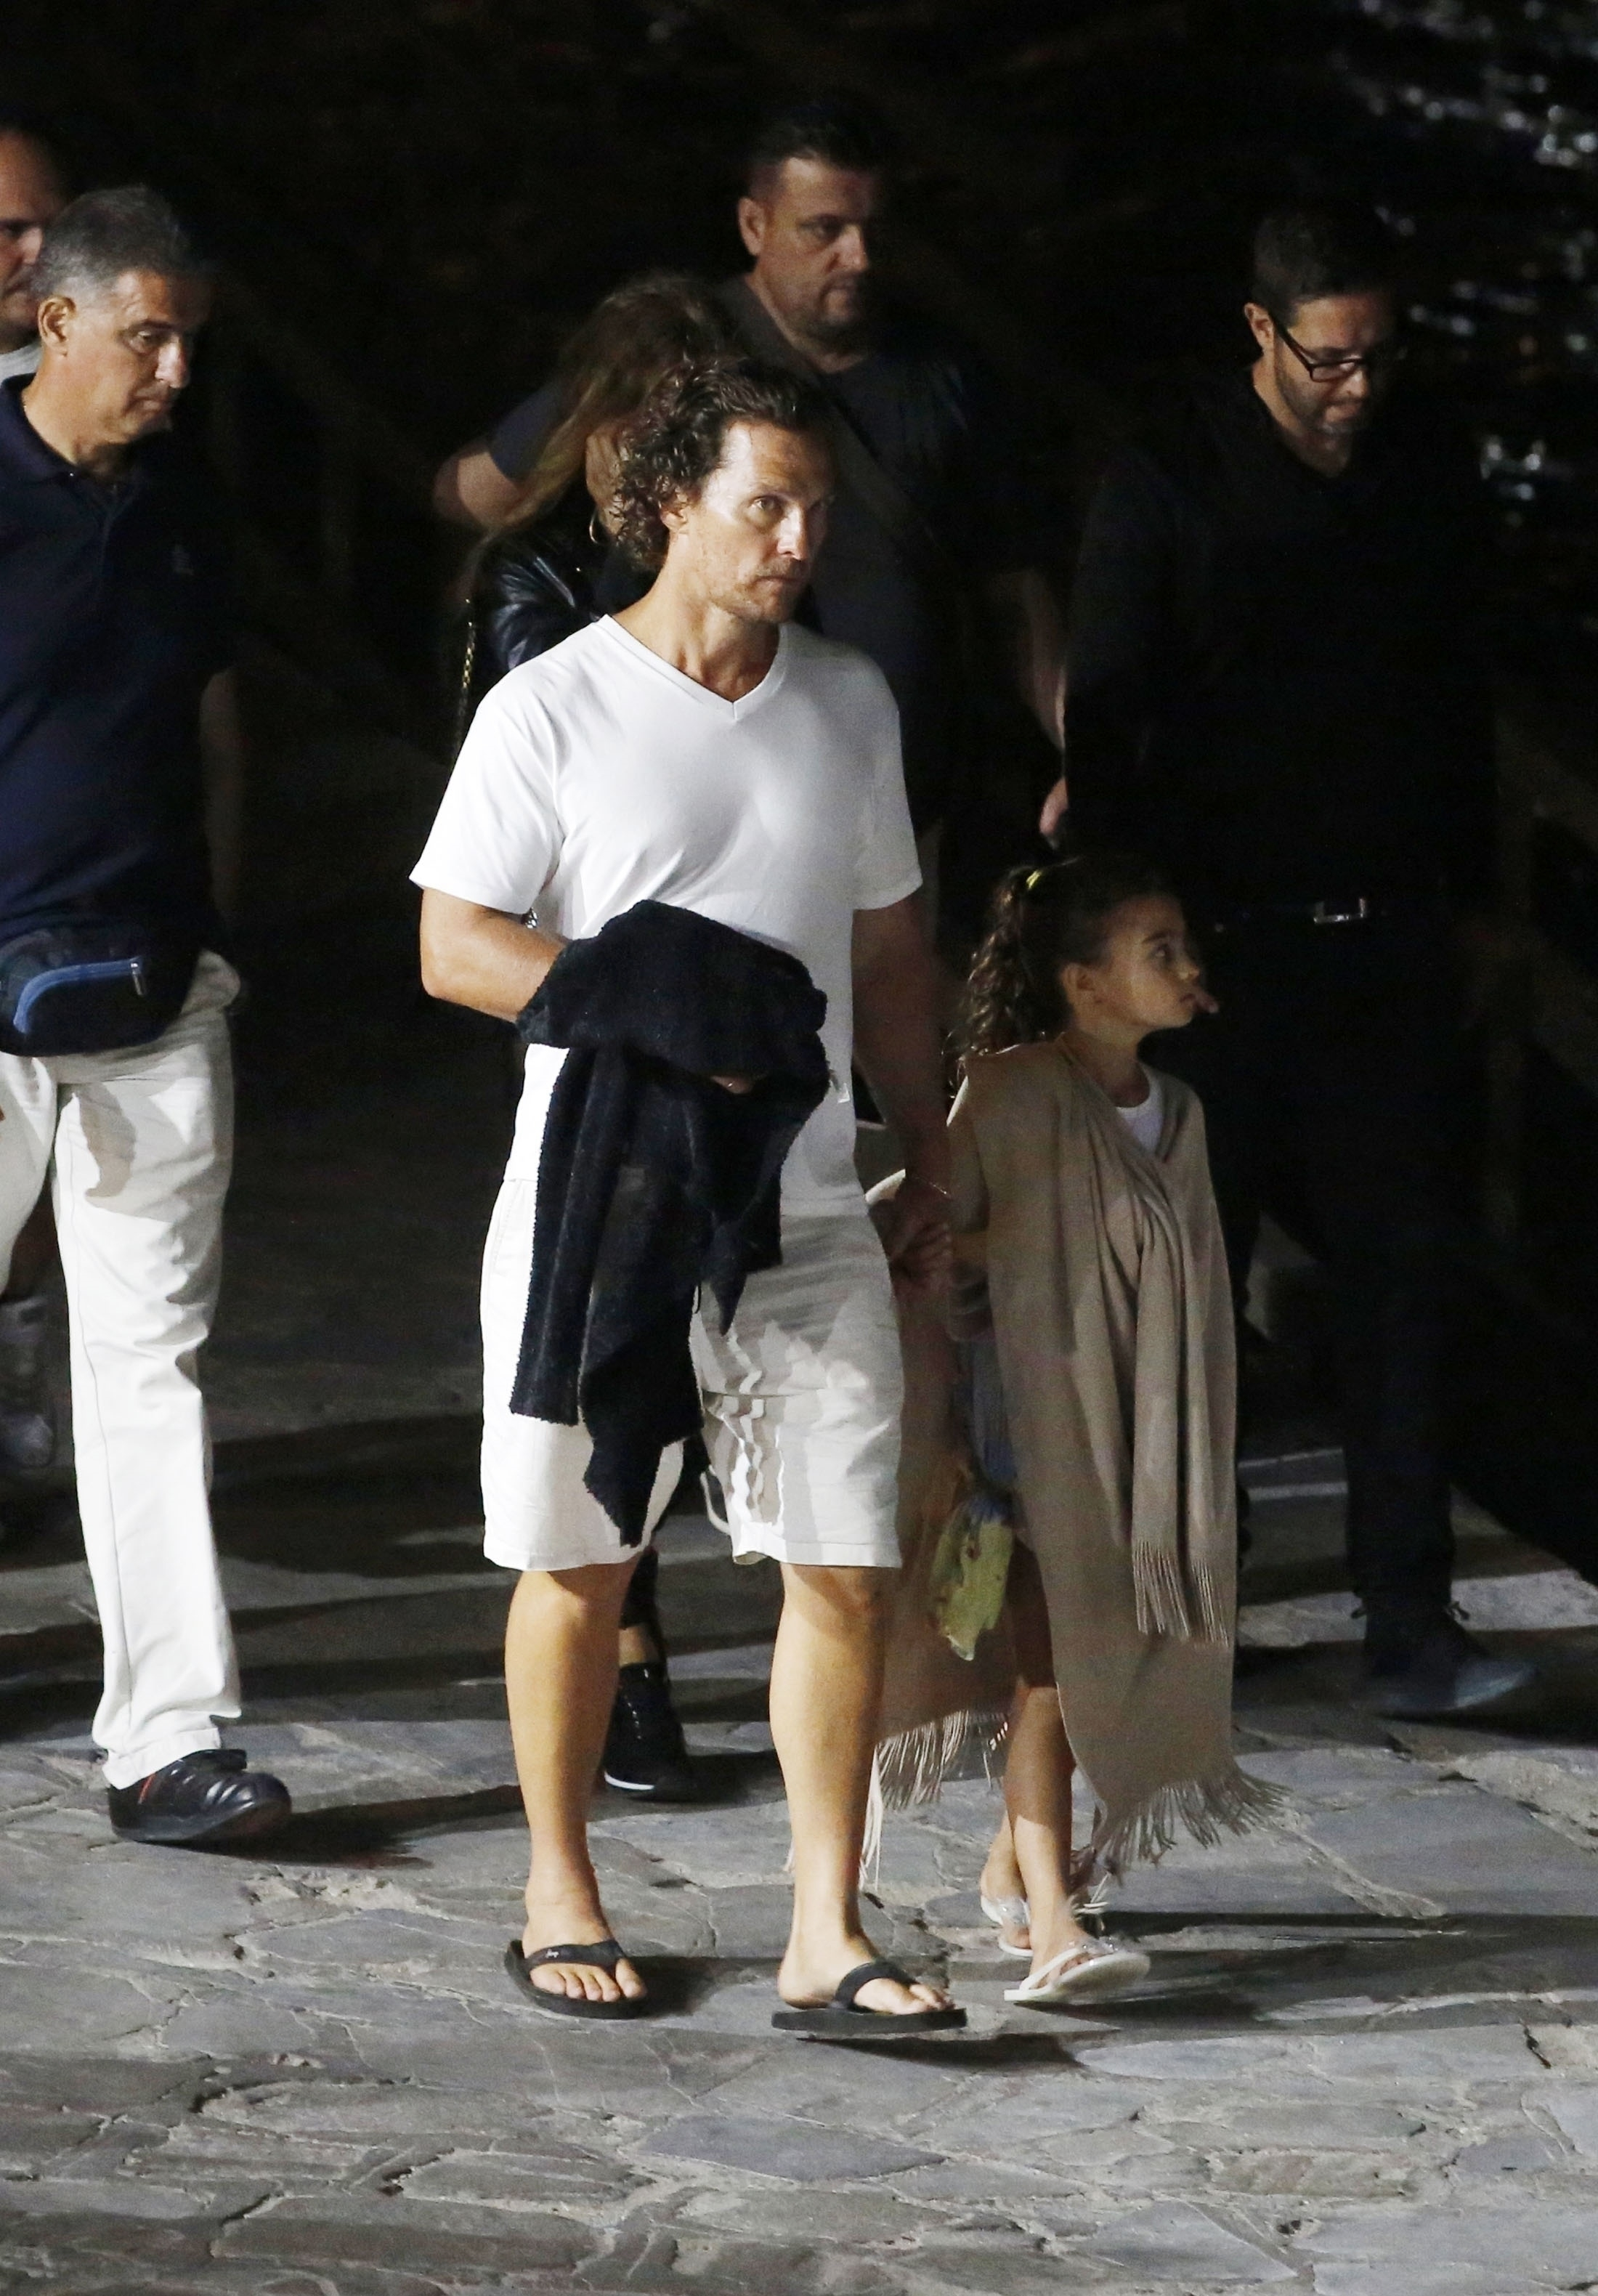 Matthew McConaughey couldn't help but play the doting dad while taking in the sights of Rome, Italy on June 24, 2018.